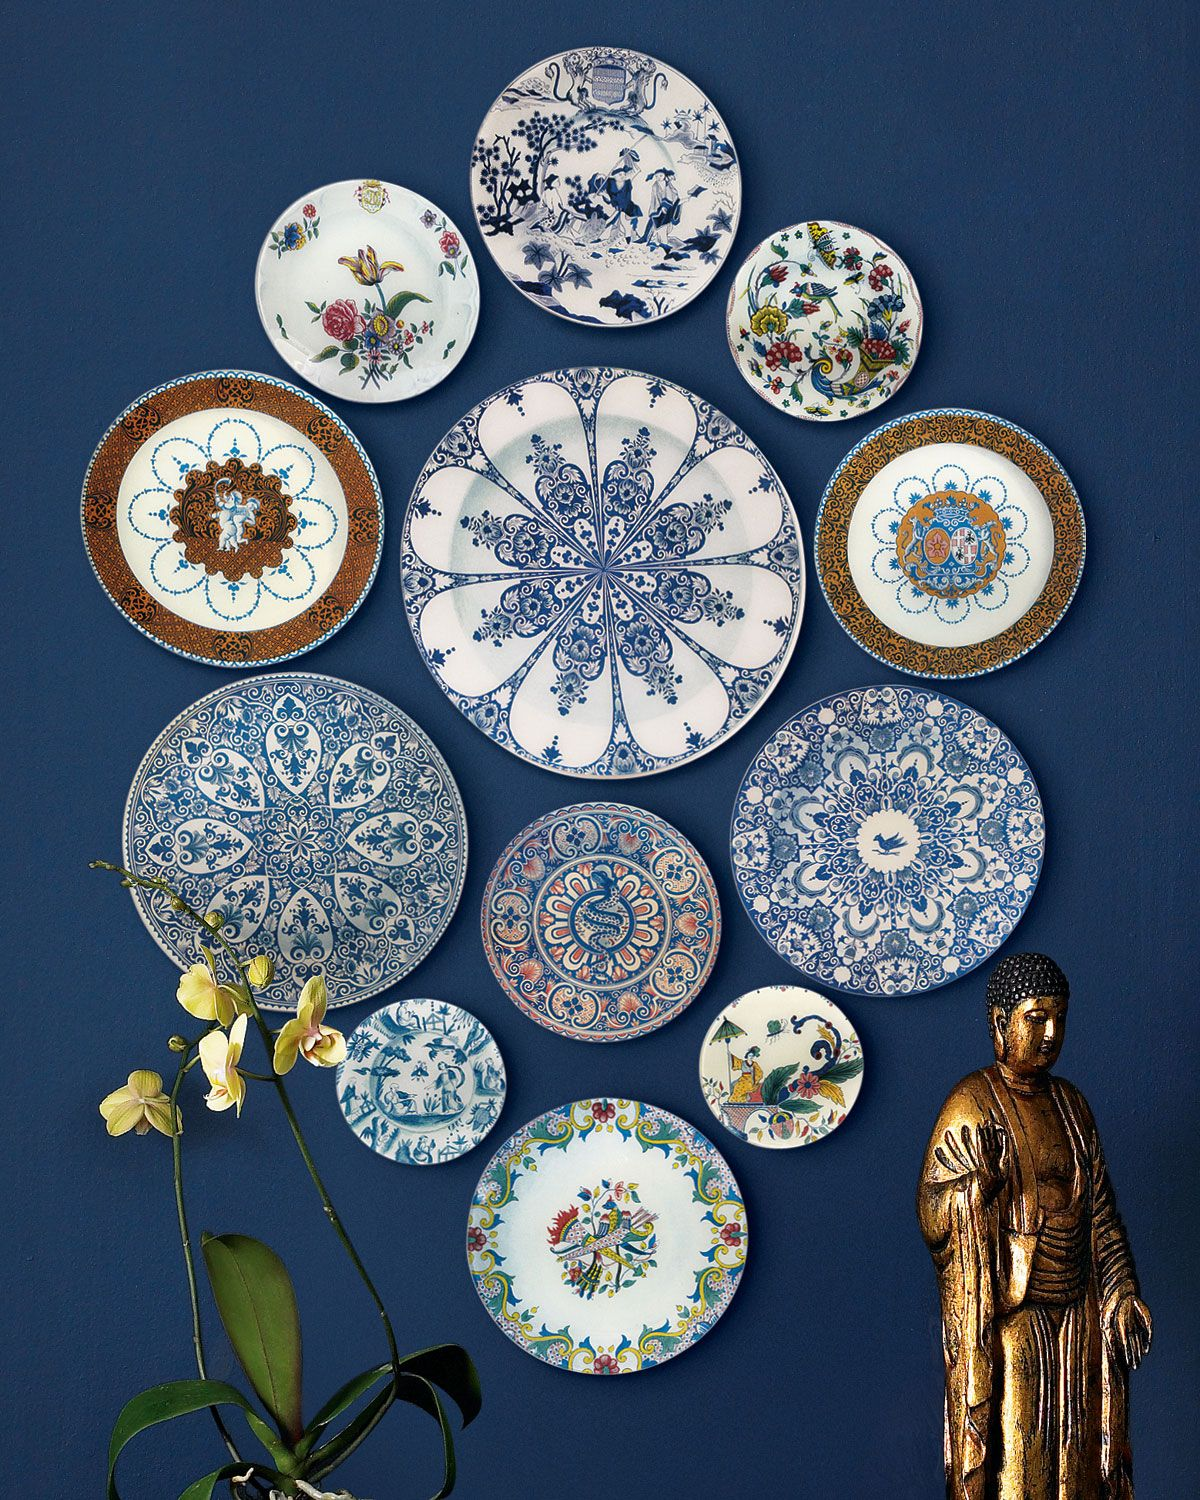 Handcrafted decorative plates by john derian mimic the antique handcrafted decorative plates by john derian mimic the antique imagery of hand painted faience pottery amipublicfo Image collections